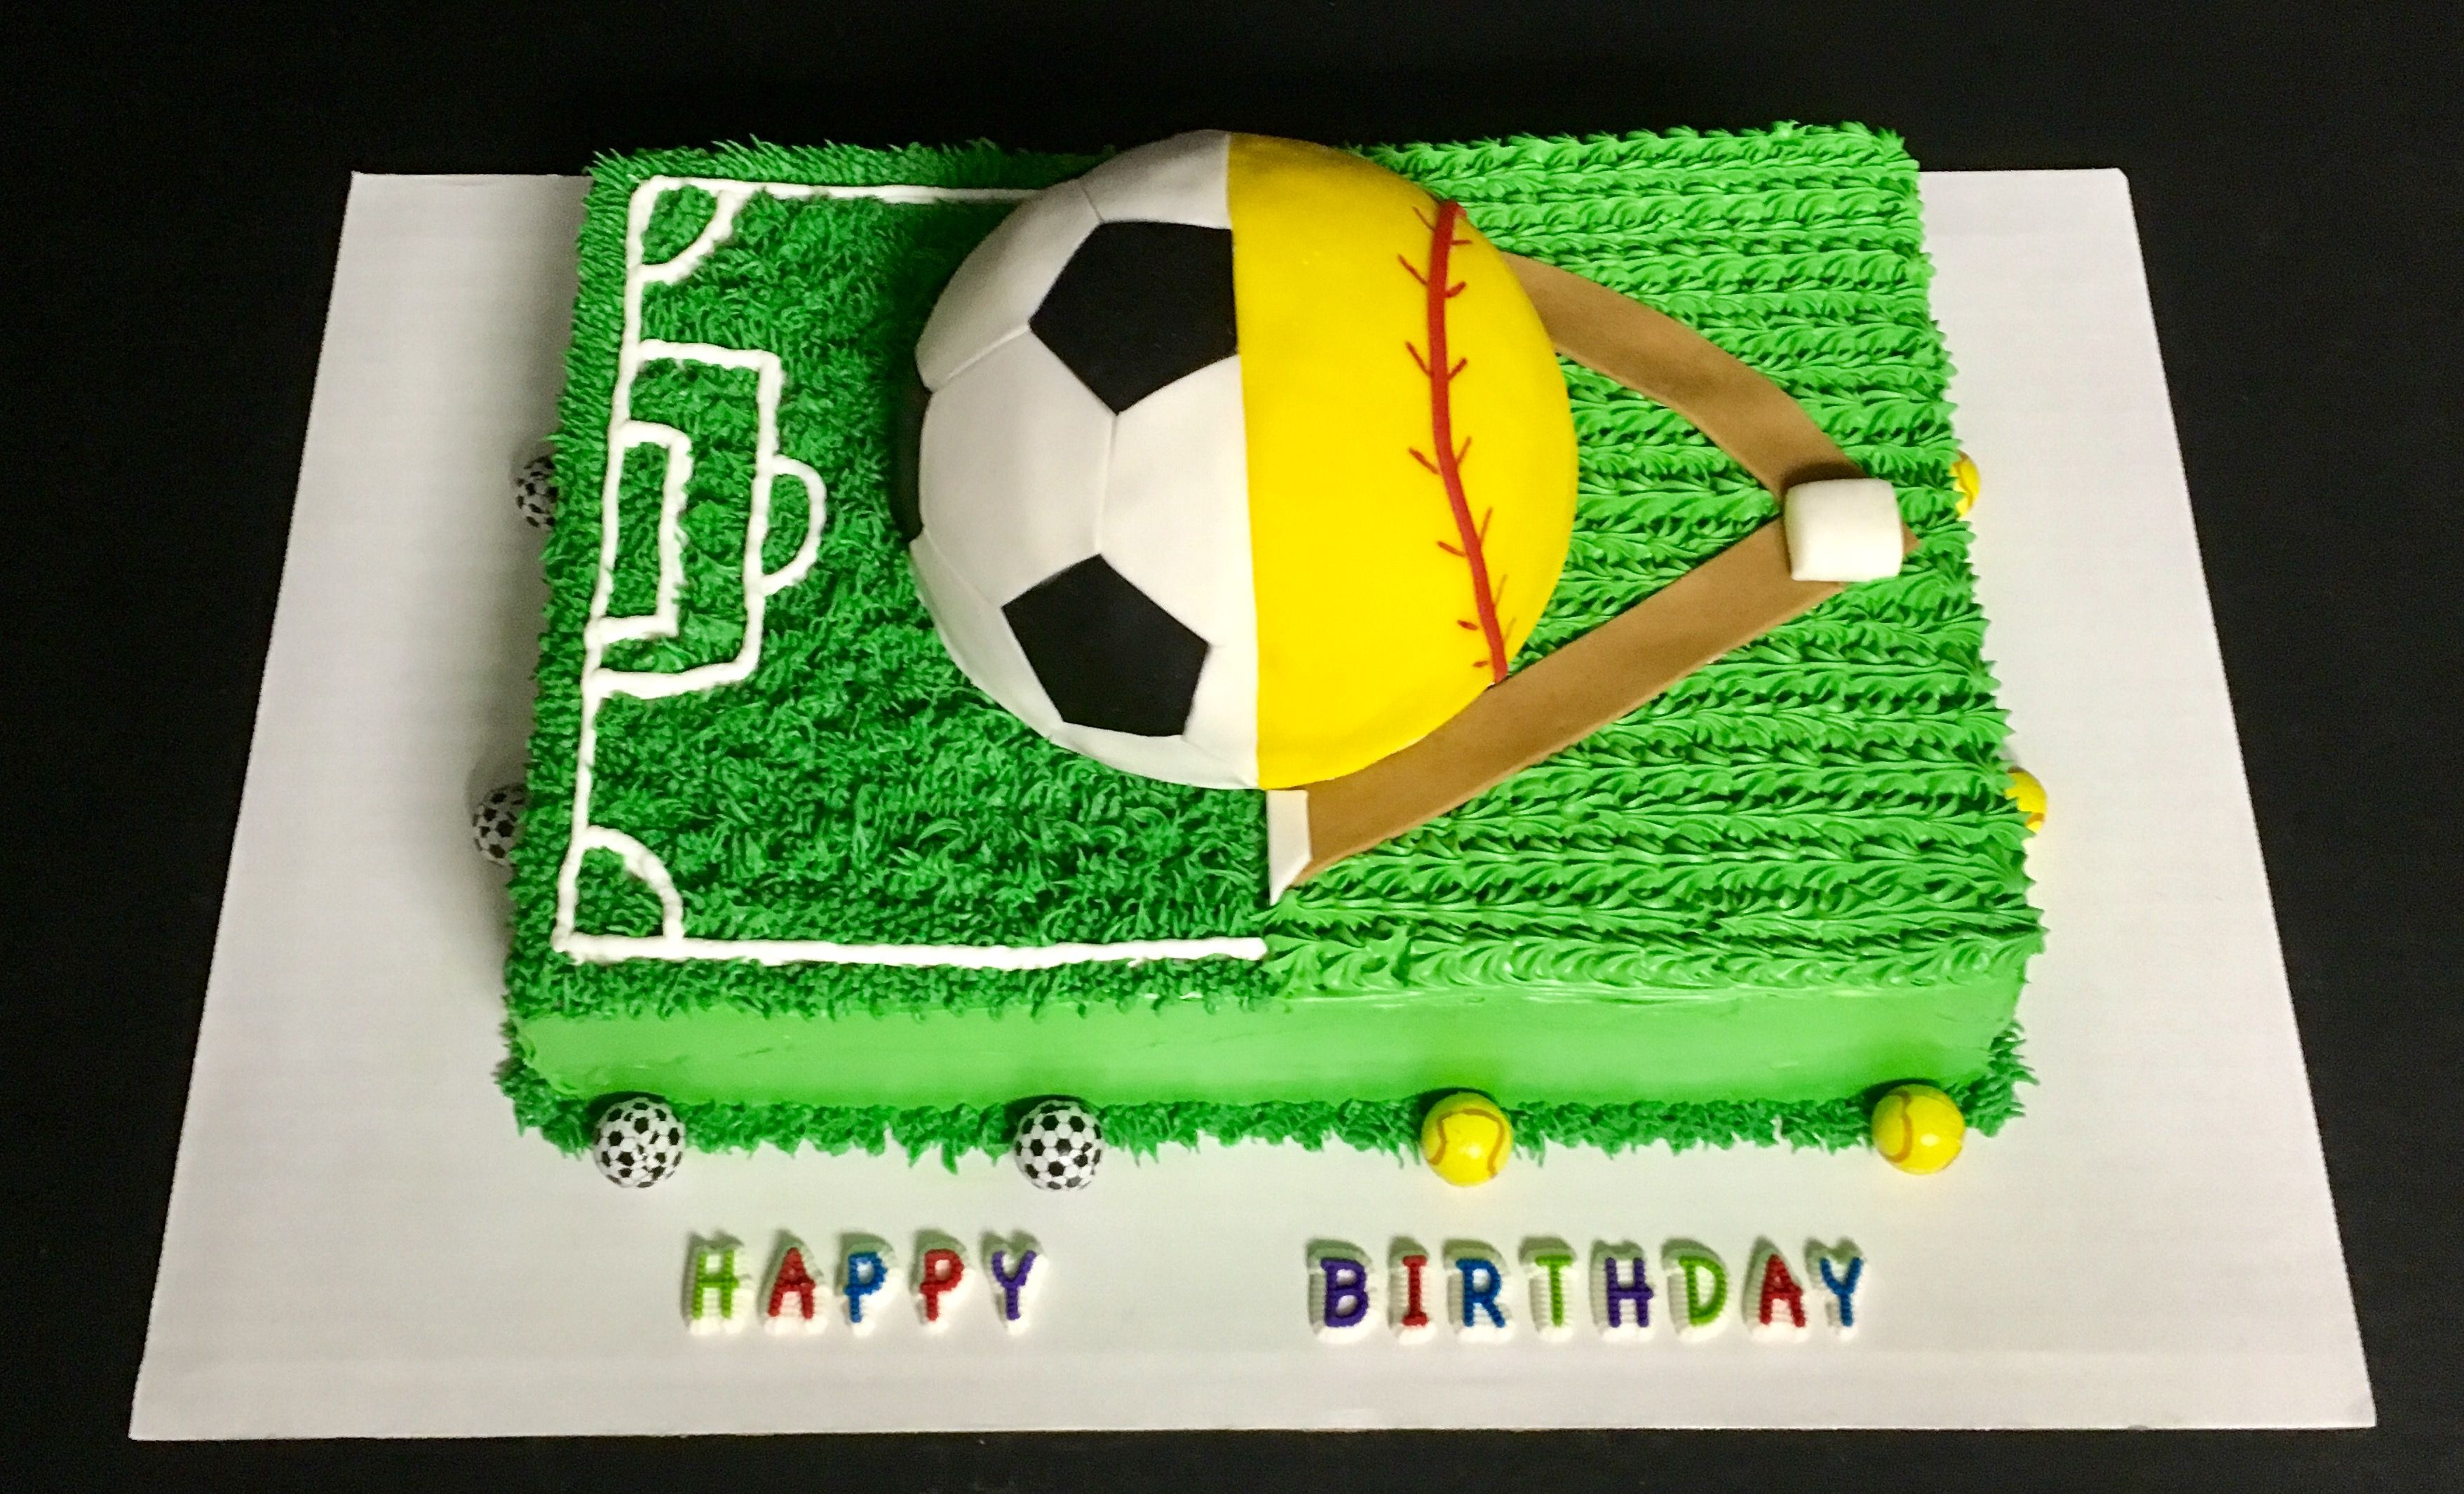 Half Soccer Half Softball Cake When You Can T Decide Choose Both Soccer Birthday Cakes Softball Birthday Cakes Soccer Birthday